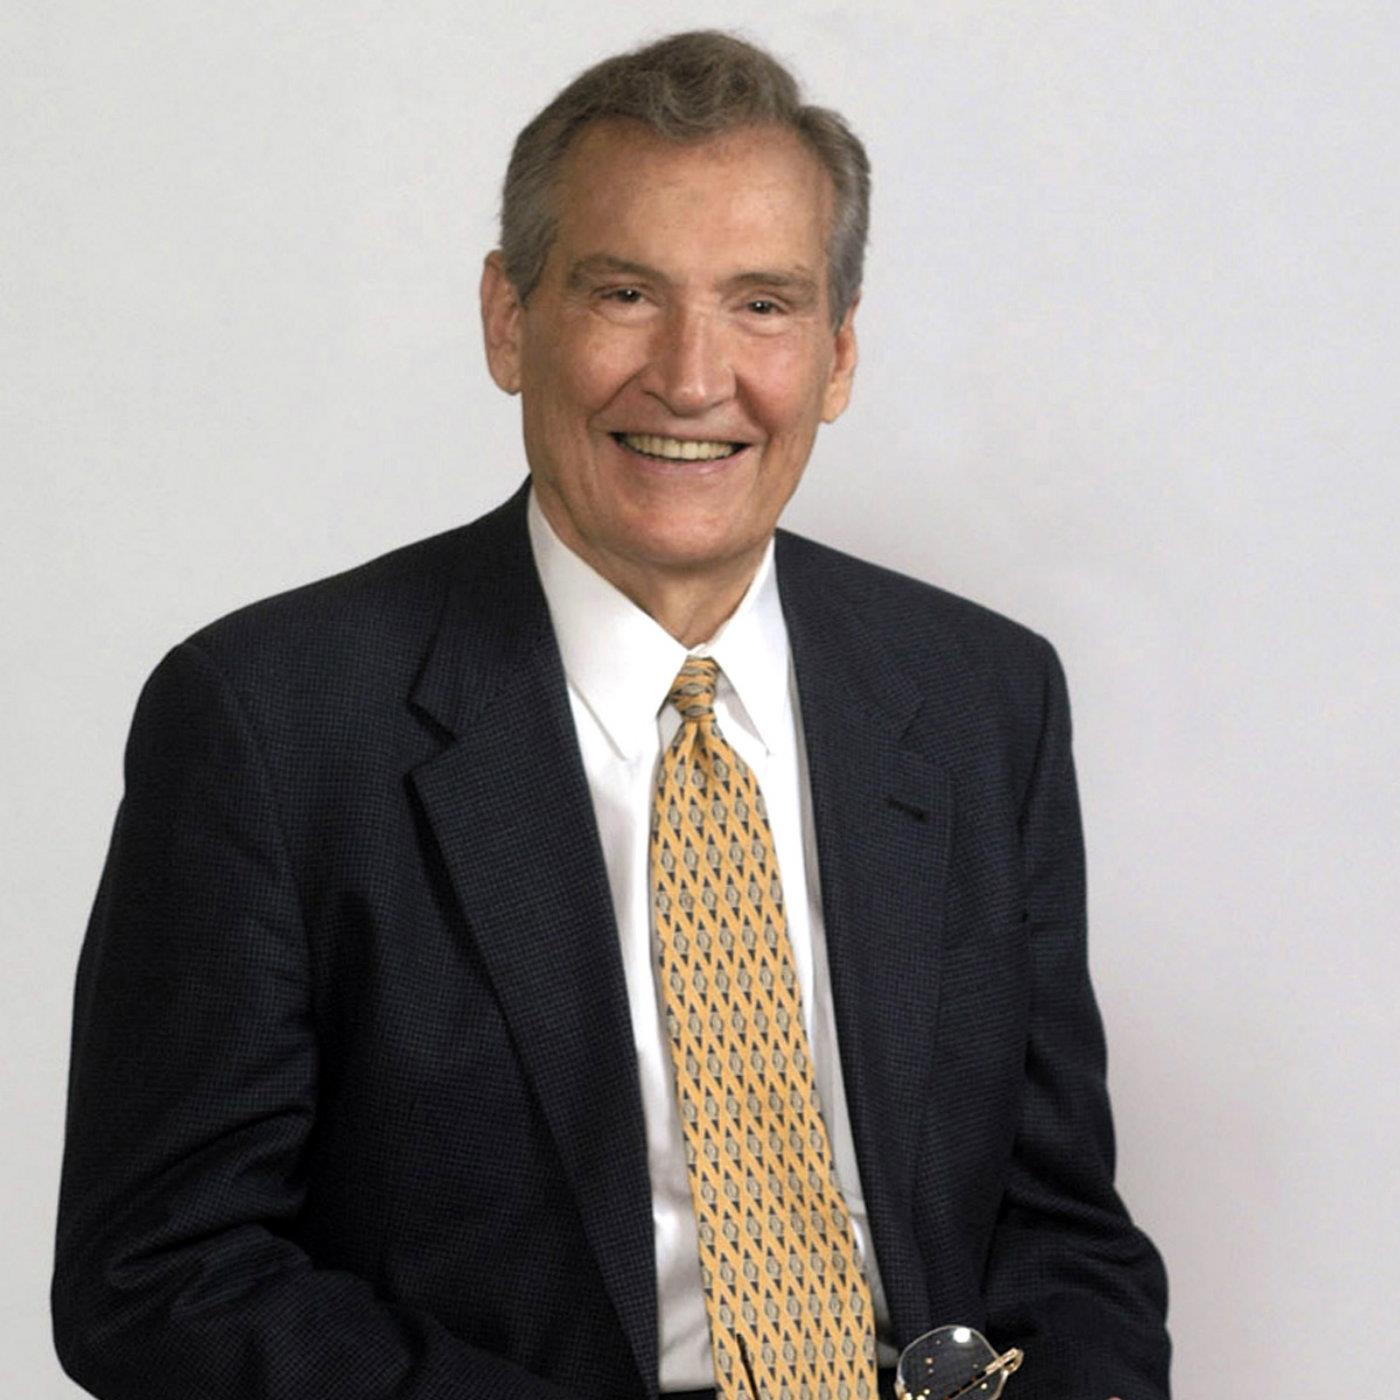 Adrian Rogers Devotional 26th October 2020, Adrian Rogers Devotional 26th October 2020 – If You Keep Your Eyes on Jesus …, Premium News24